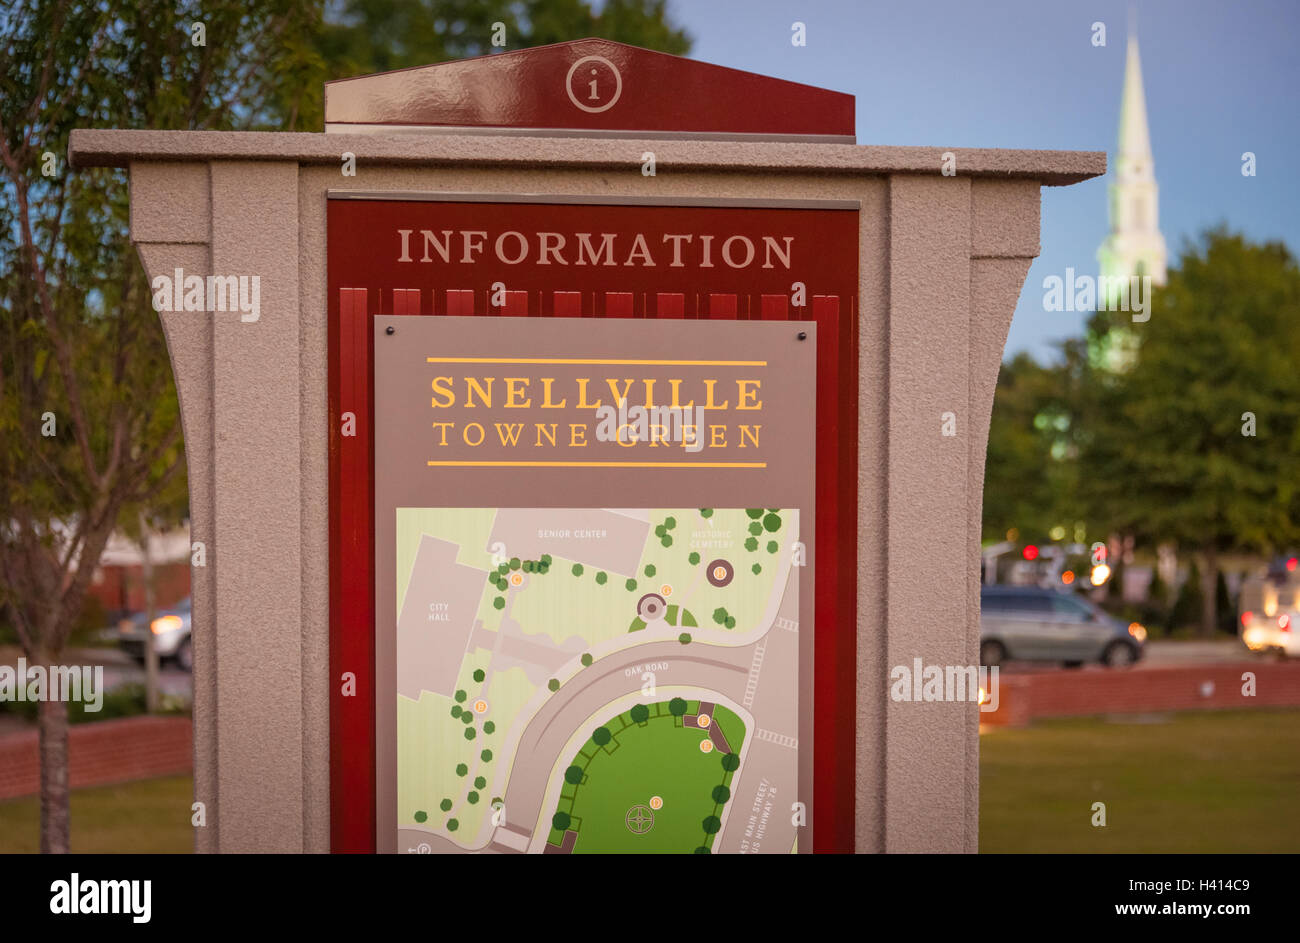 Information signage on the Snellville Towne Green in Snellville, Georgia, a suburban community east of Atlanta. Stock Photo